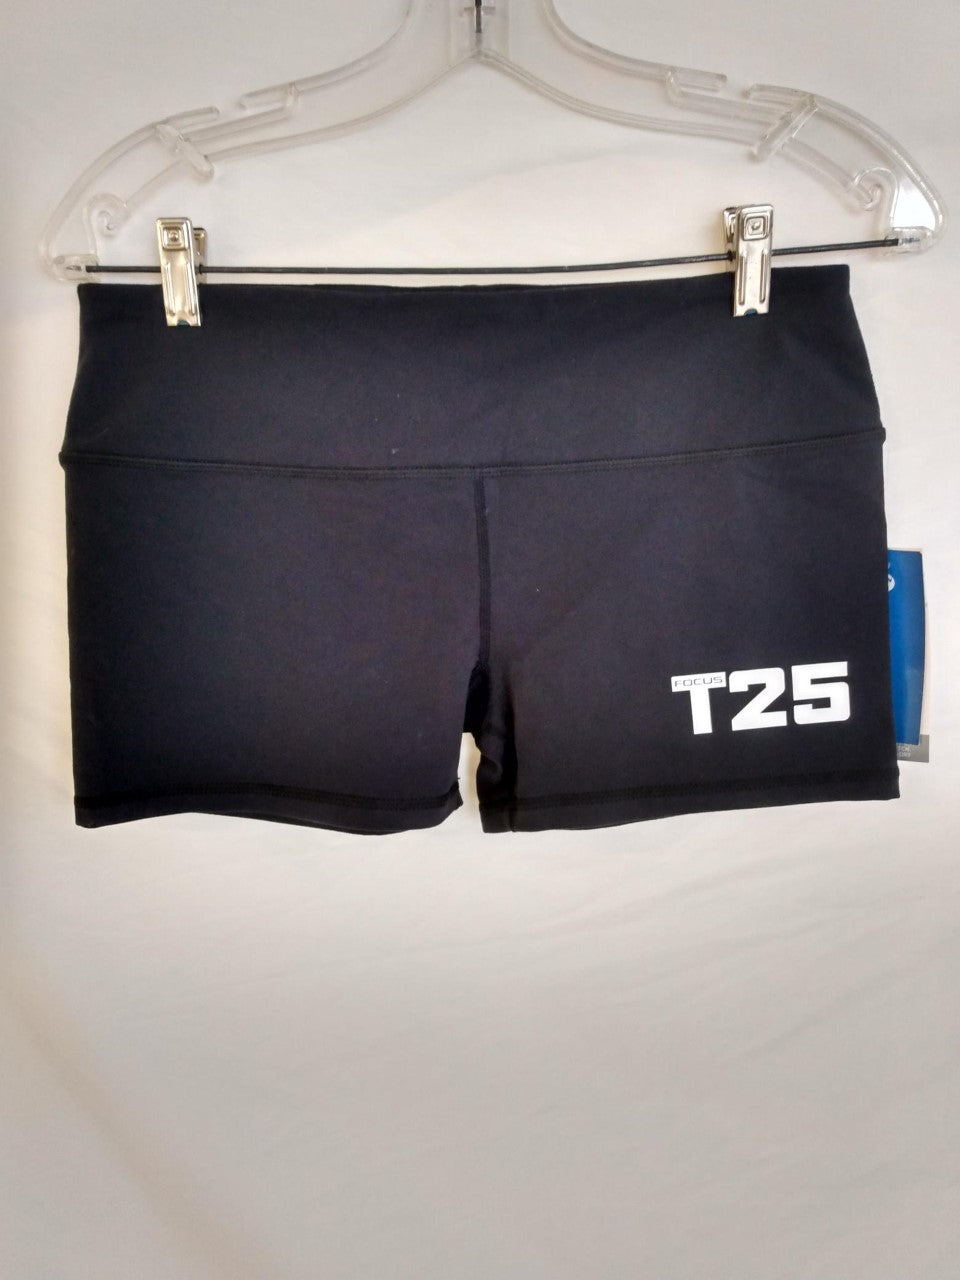 Beach Body Shorts- Size: M- NEW